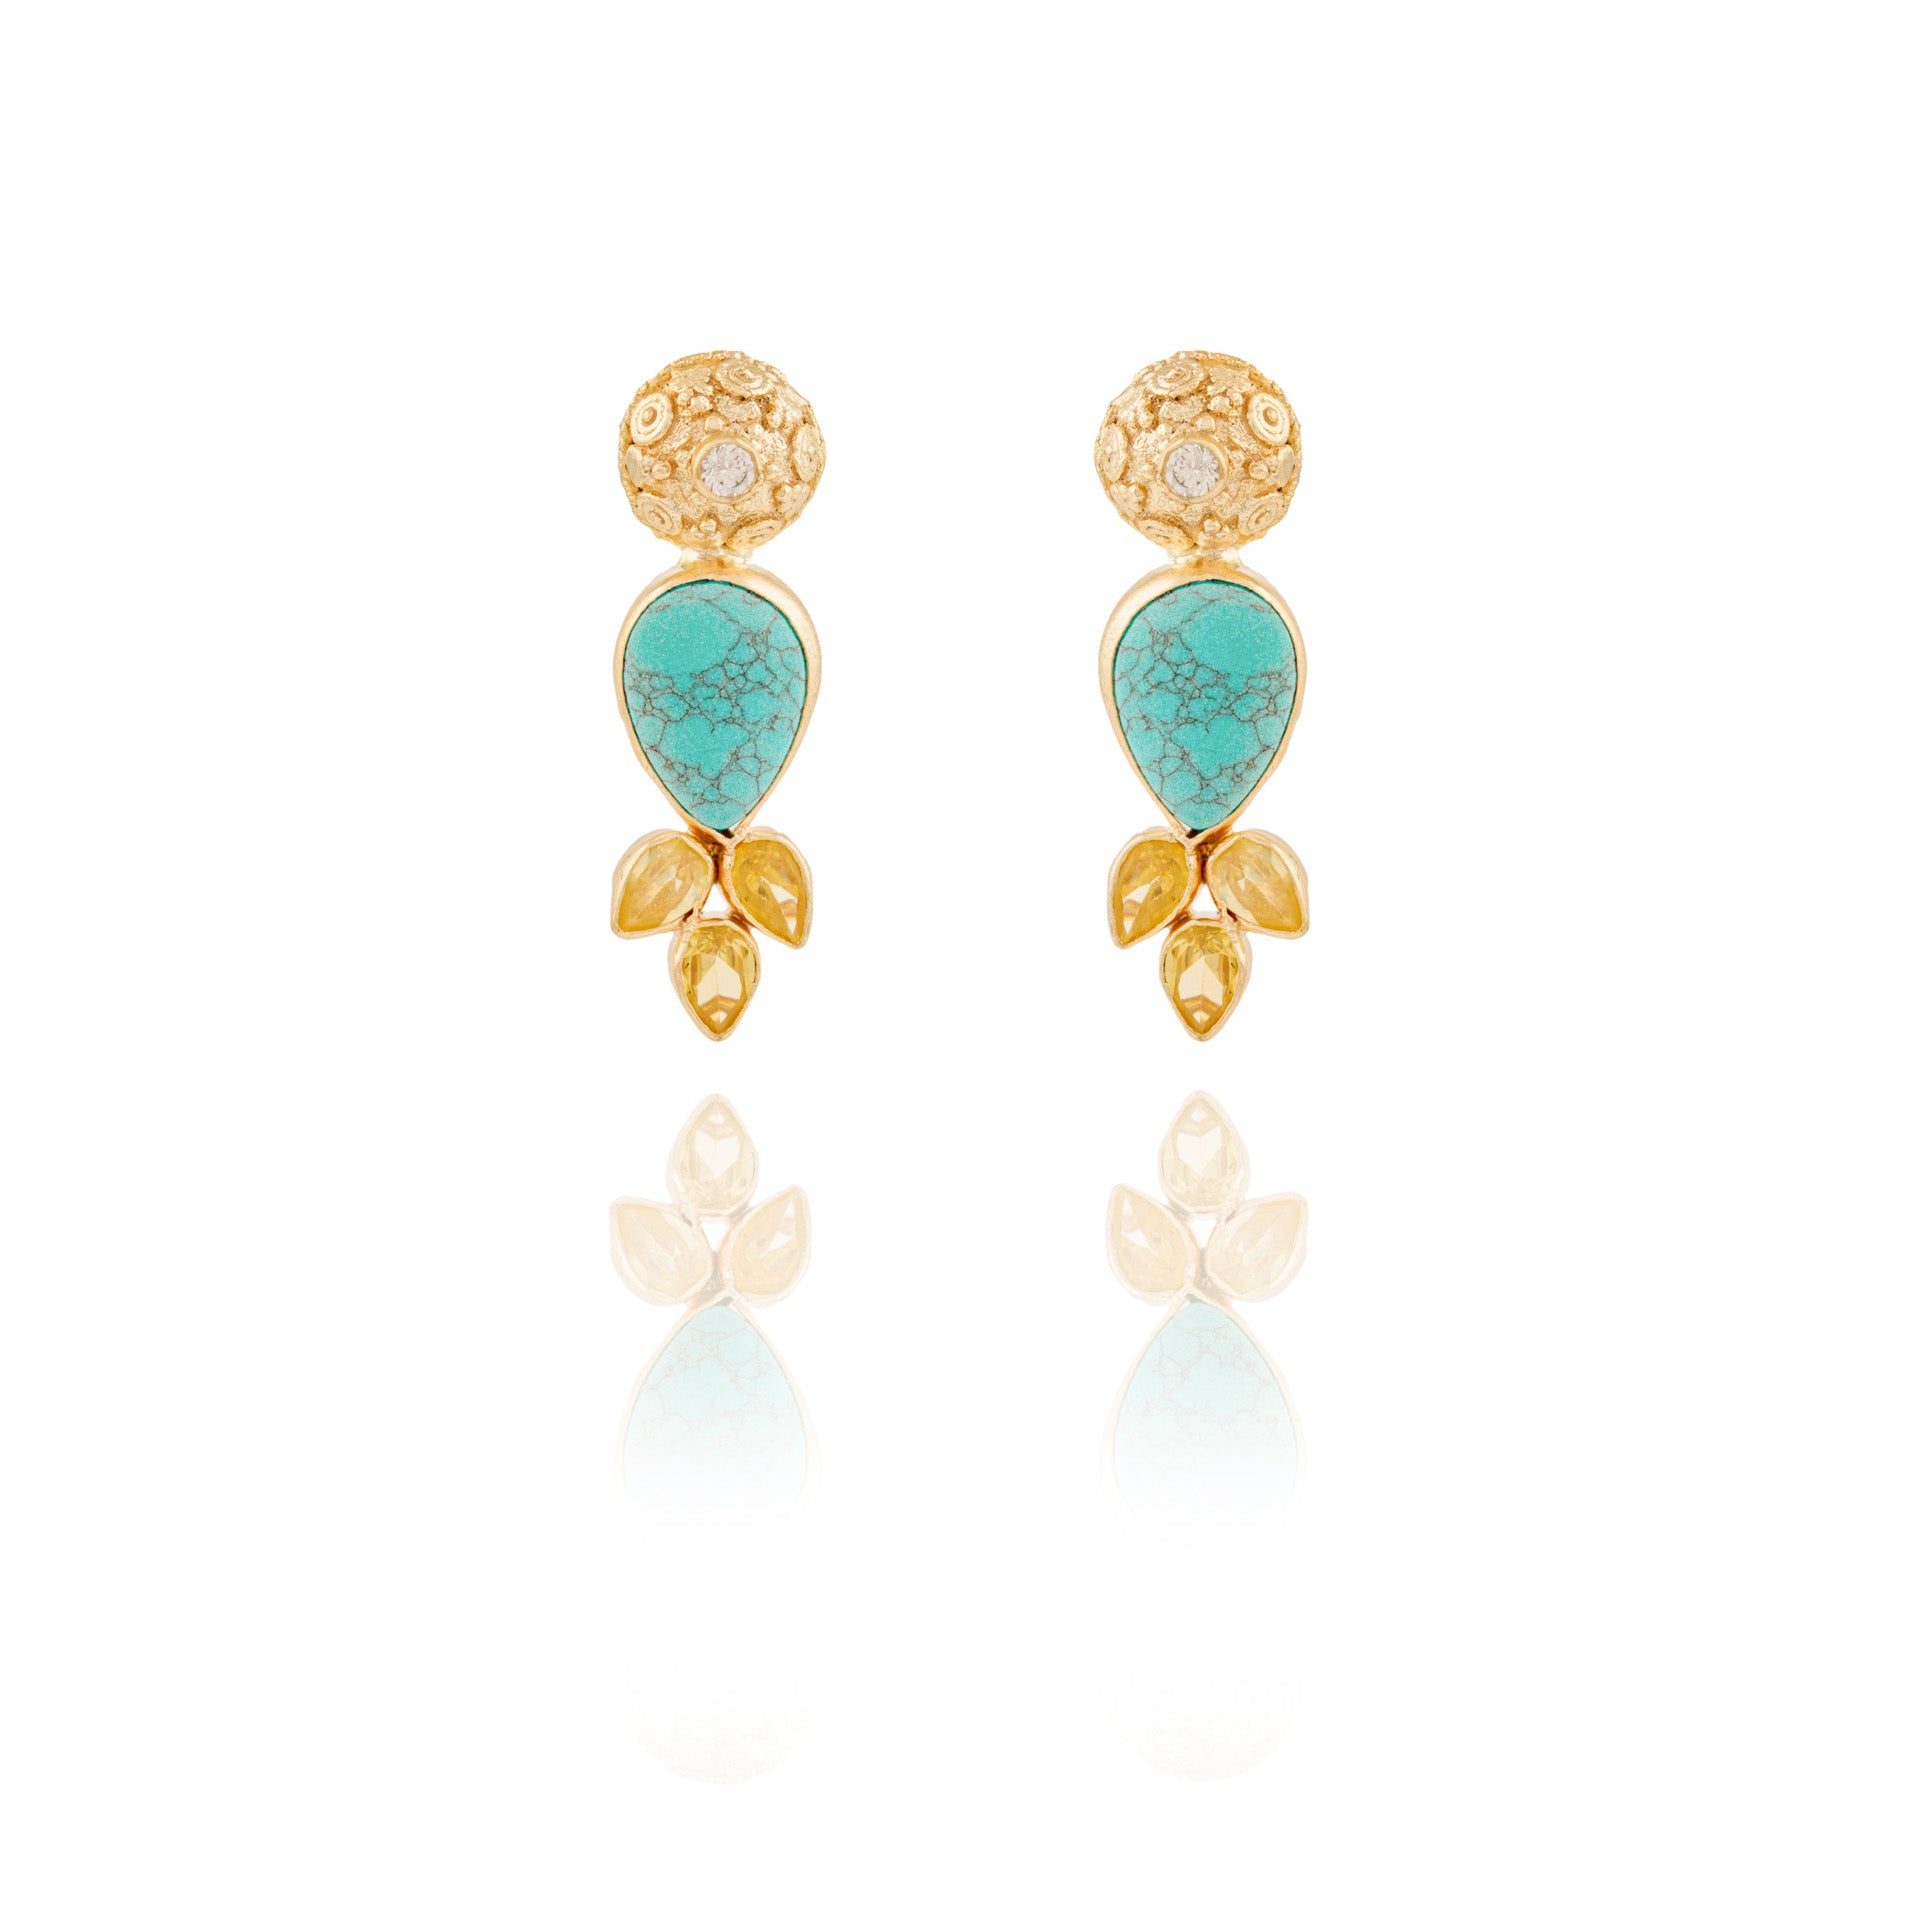 Turquoise and Golden Teardrop Earrings